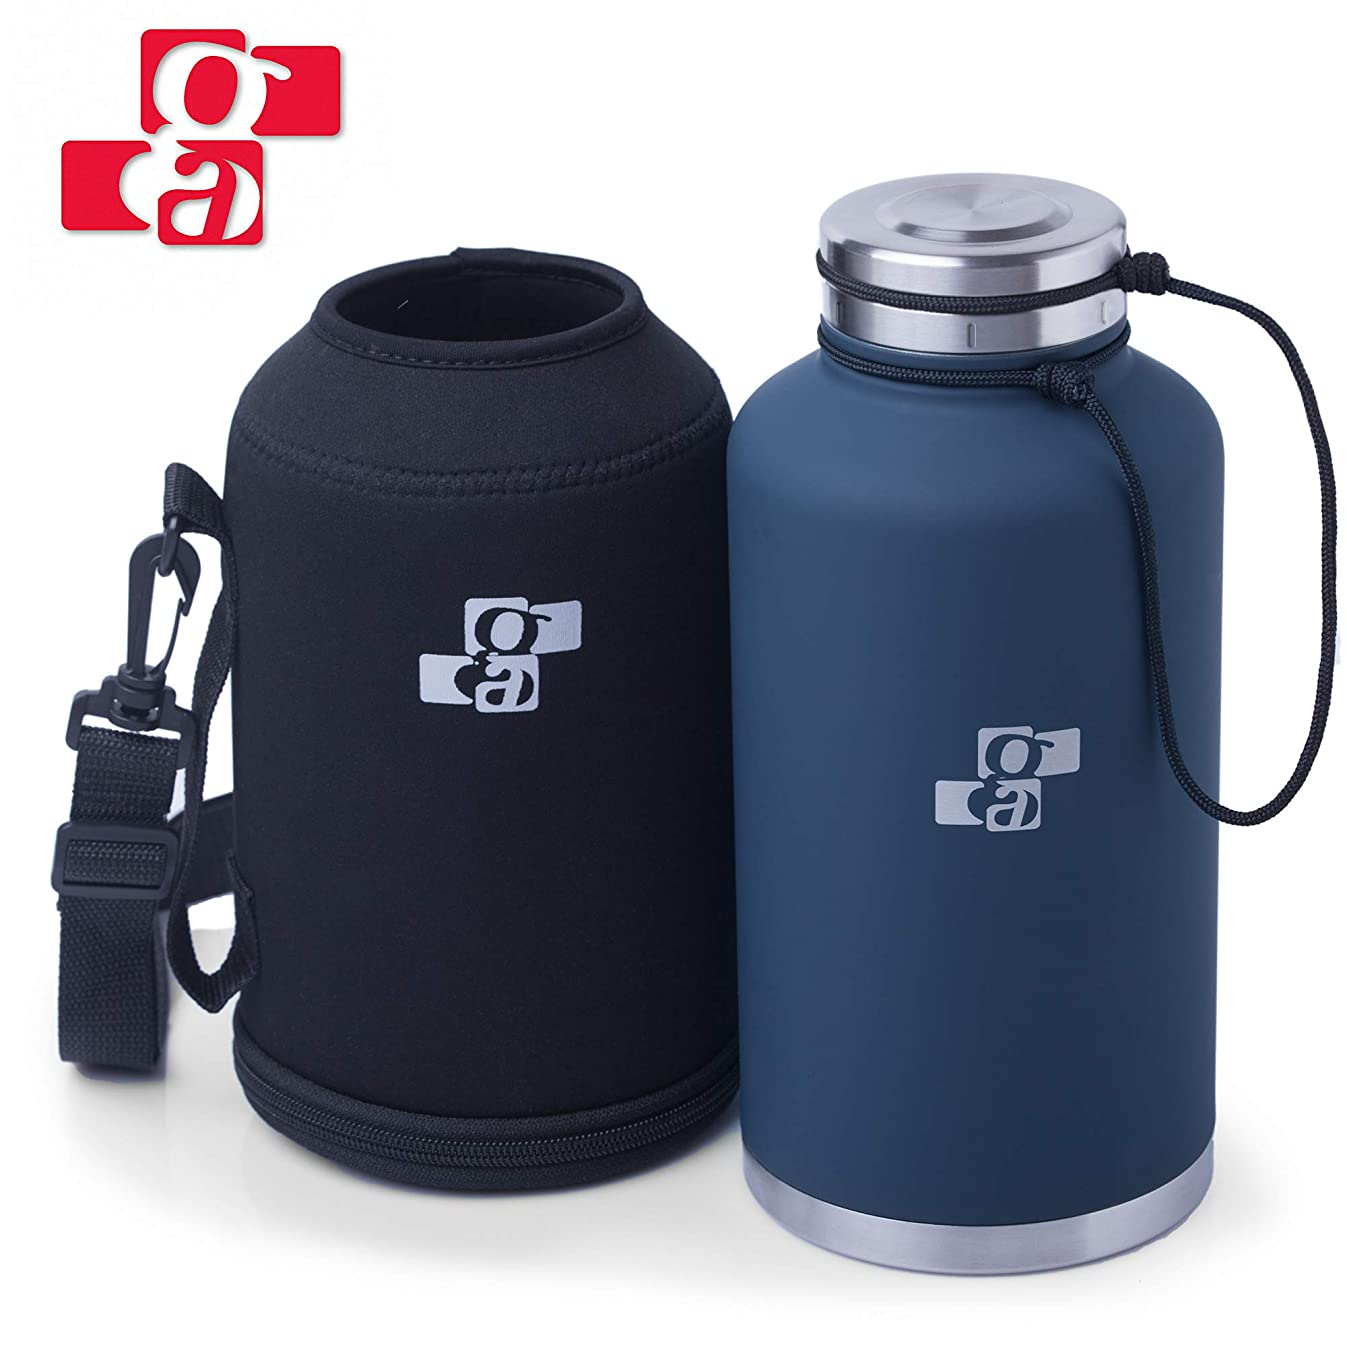 Beer Growler 64 oz with New Lid - Thermos Water Bottle - Insulated Stainless Steel Vacuum Water Jug Dark Blue for Hot and Cold Beverages - Black Neoprene Growler Carrier